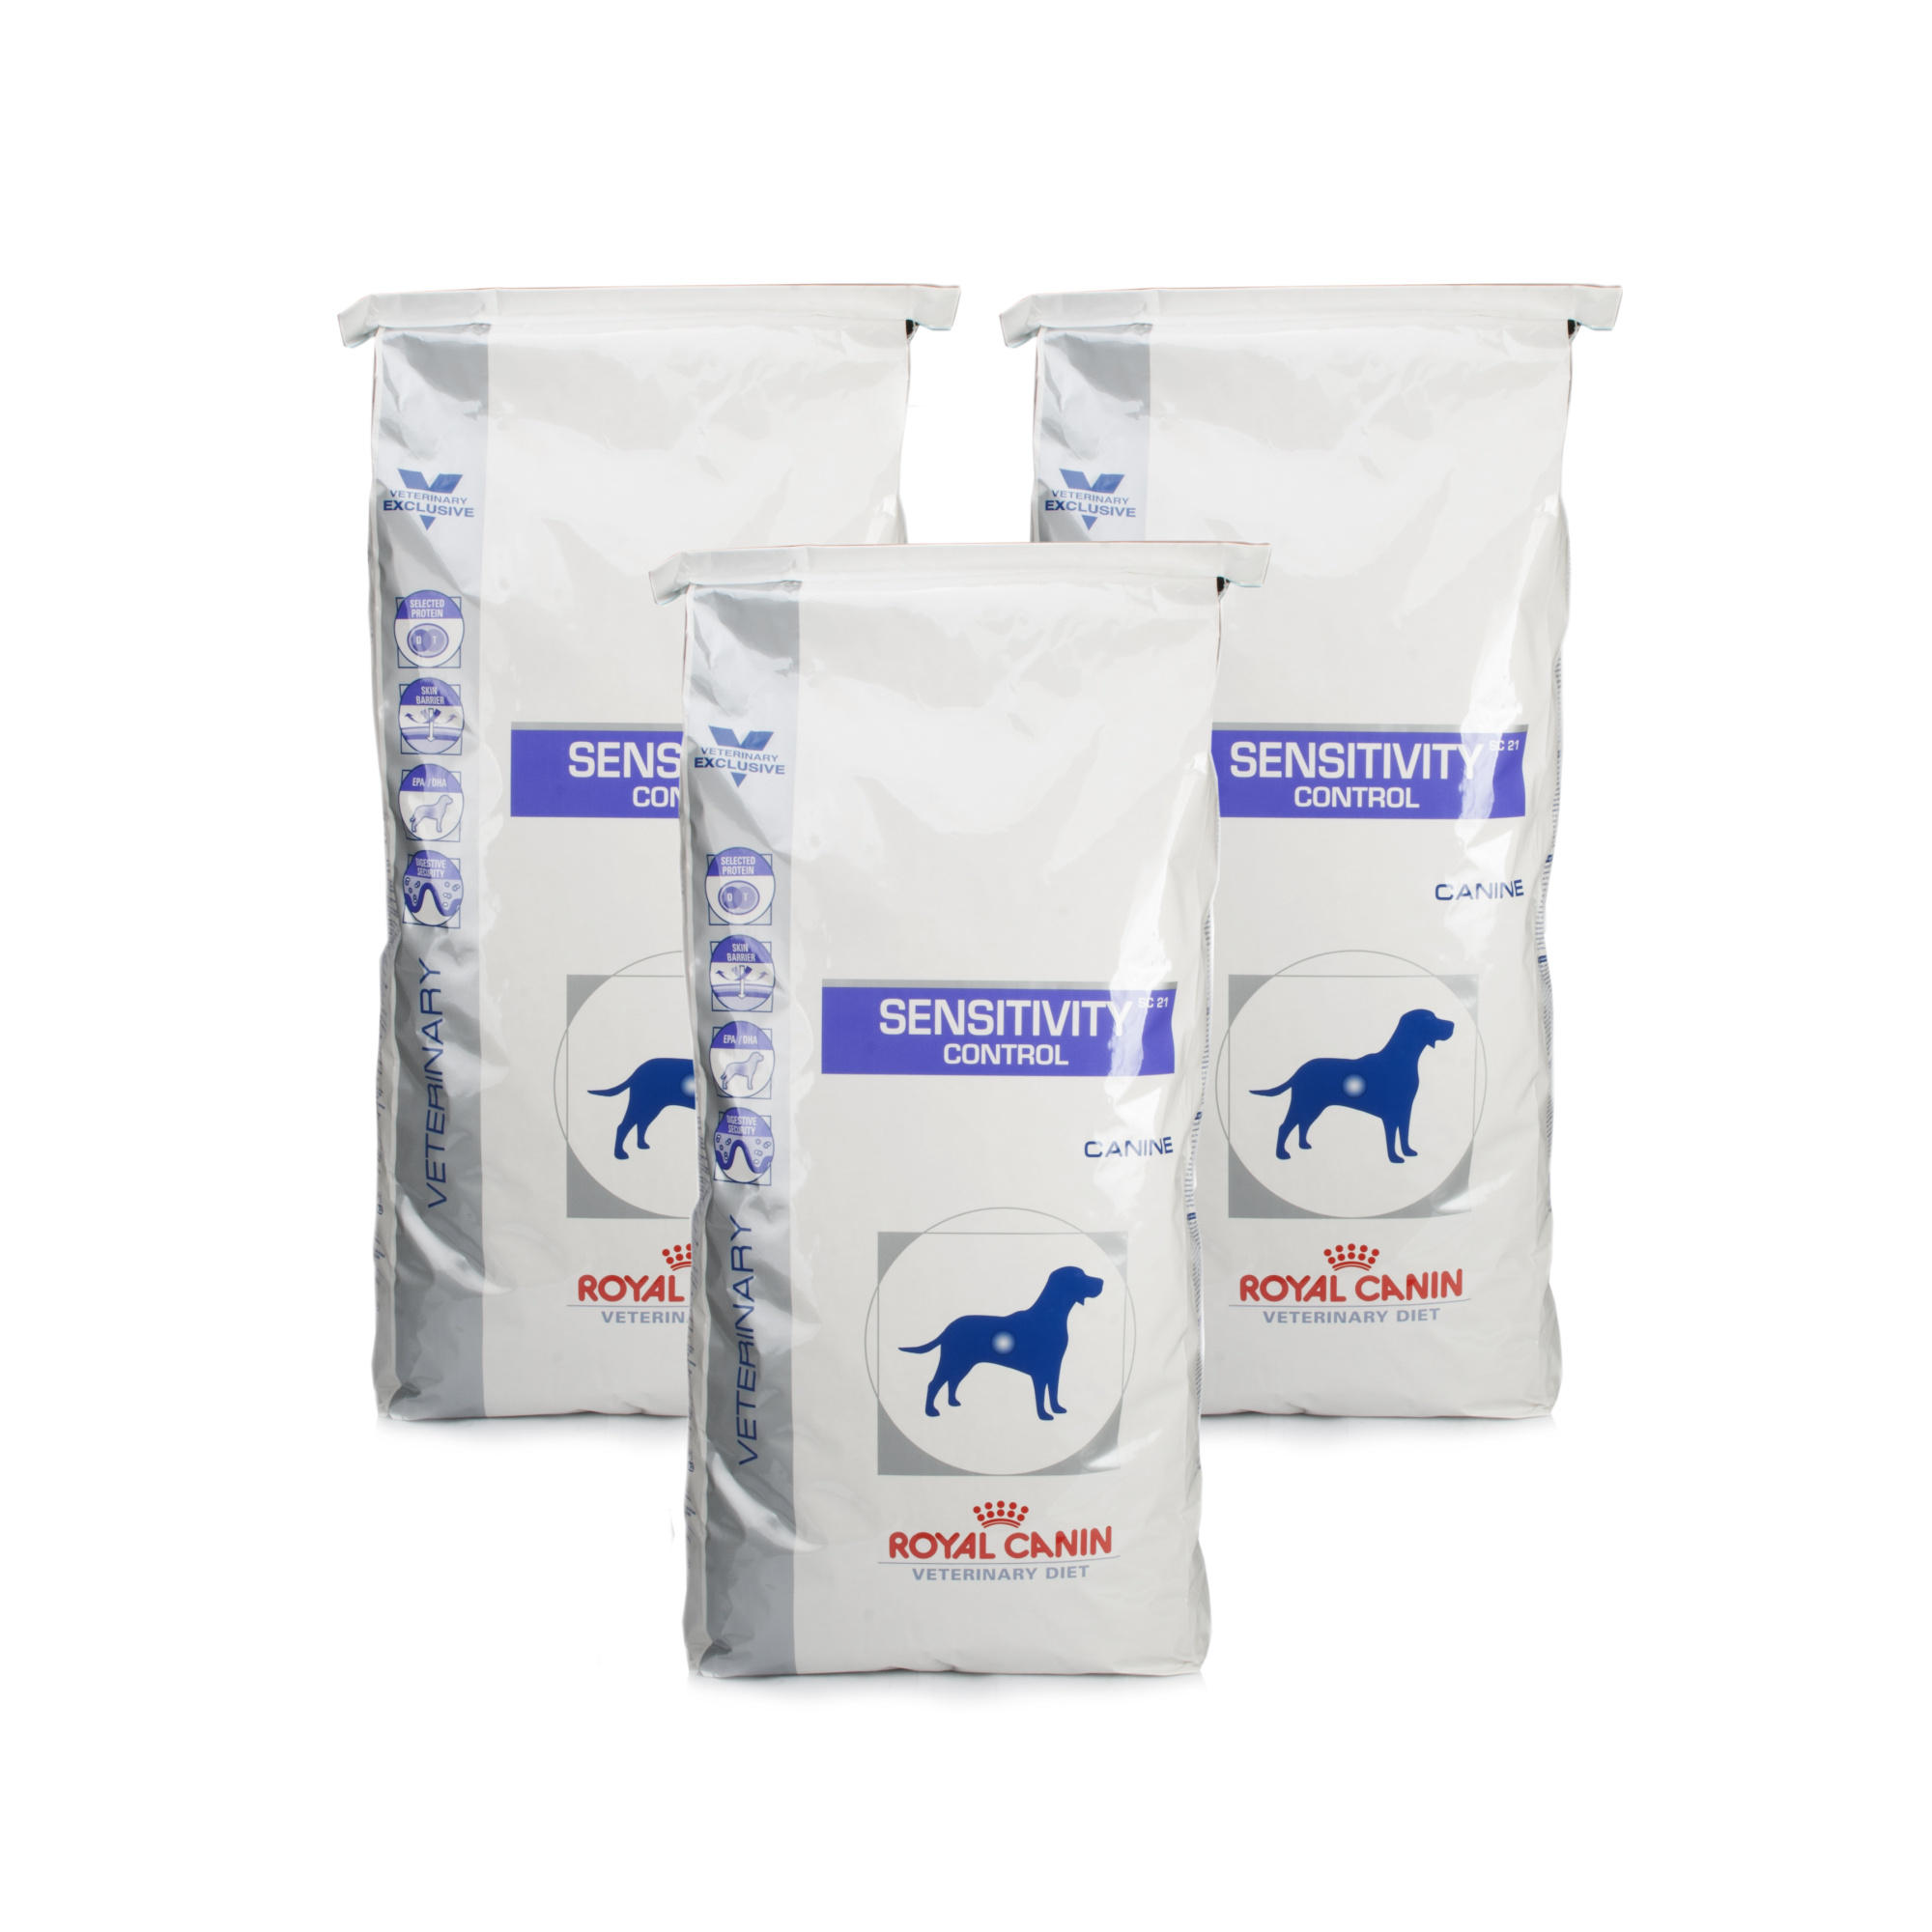 Royal Canin Canine Veterinary Diet Sensitivity Control Duck & Tapioca 3 Pack